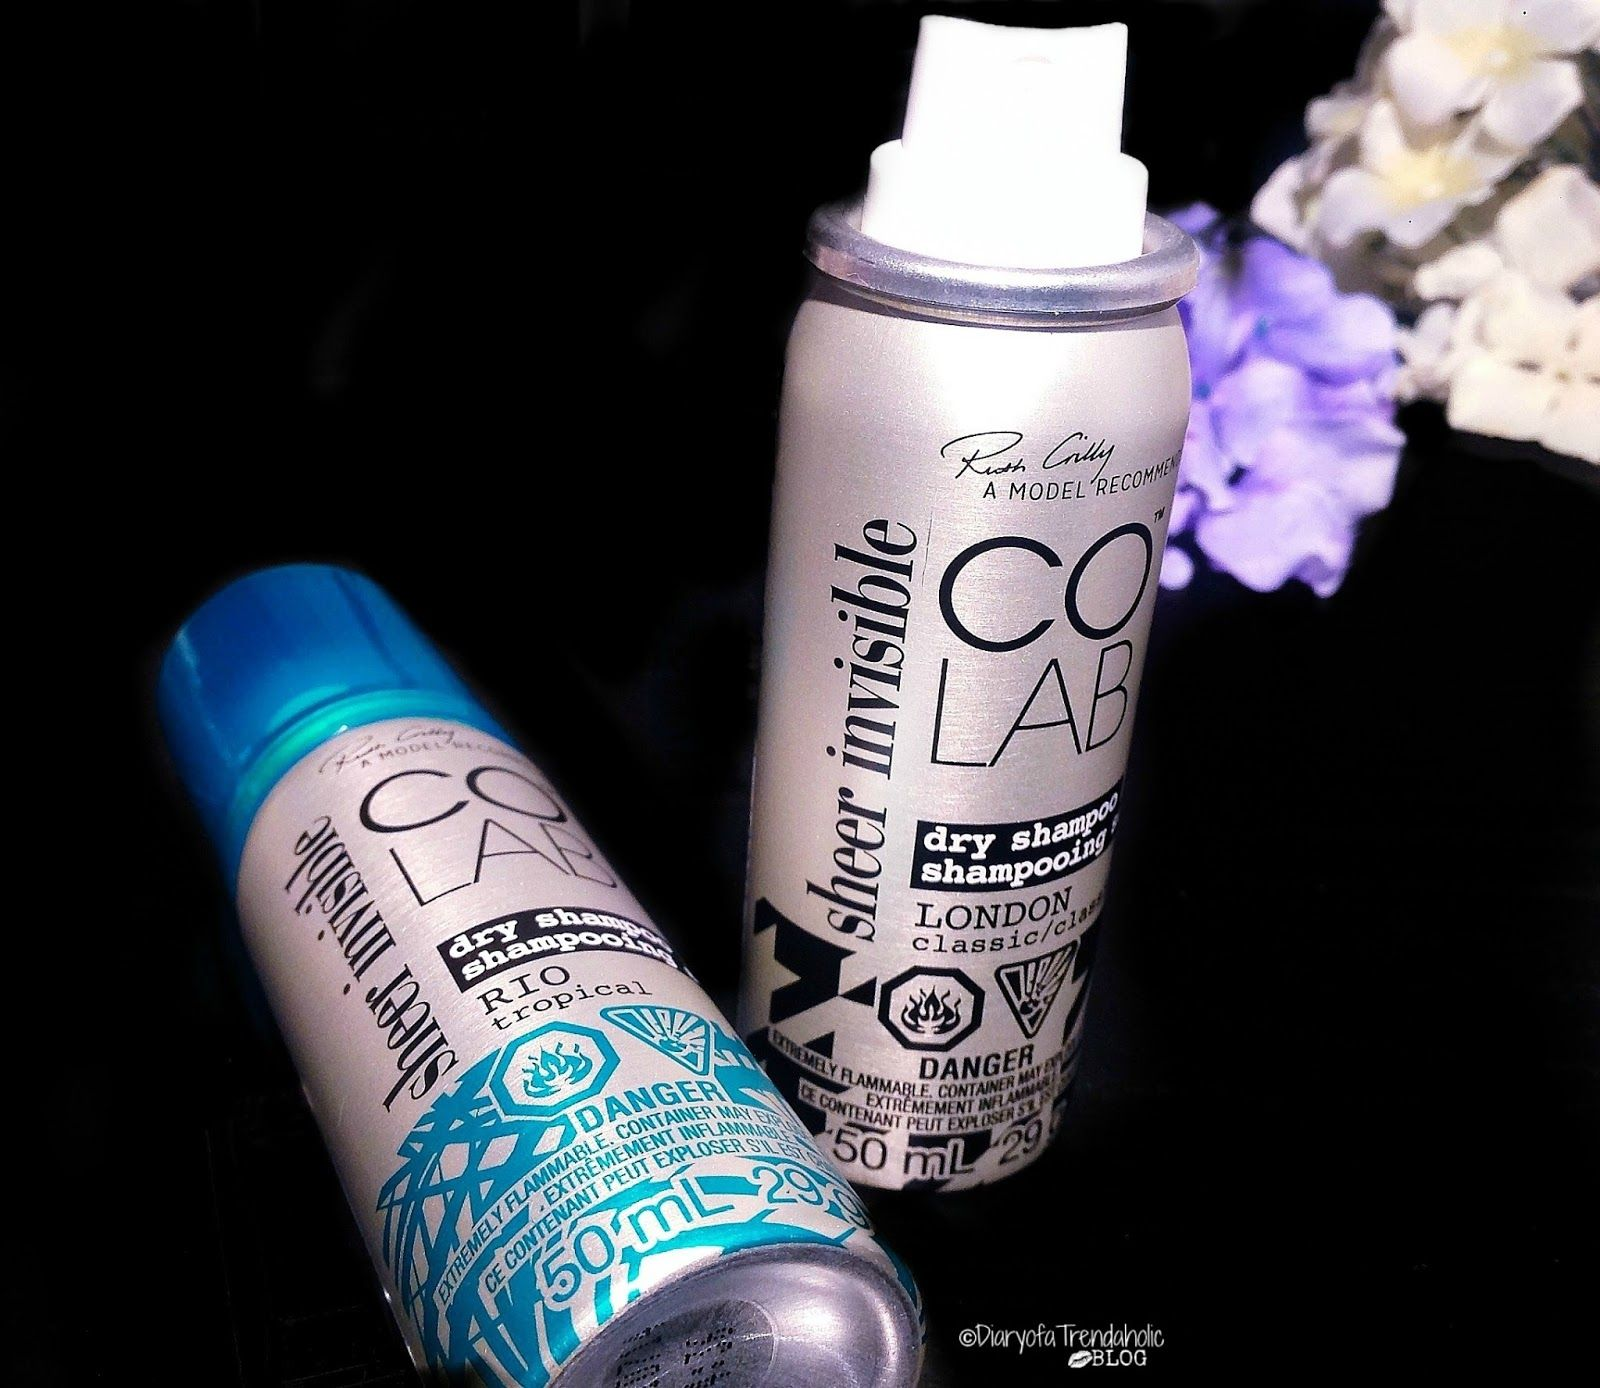 colabhair Sheer Invisible Dry Shampoo (London& Rio